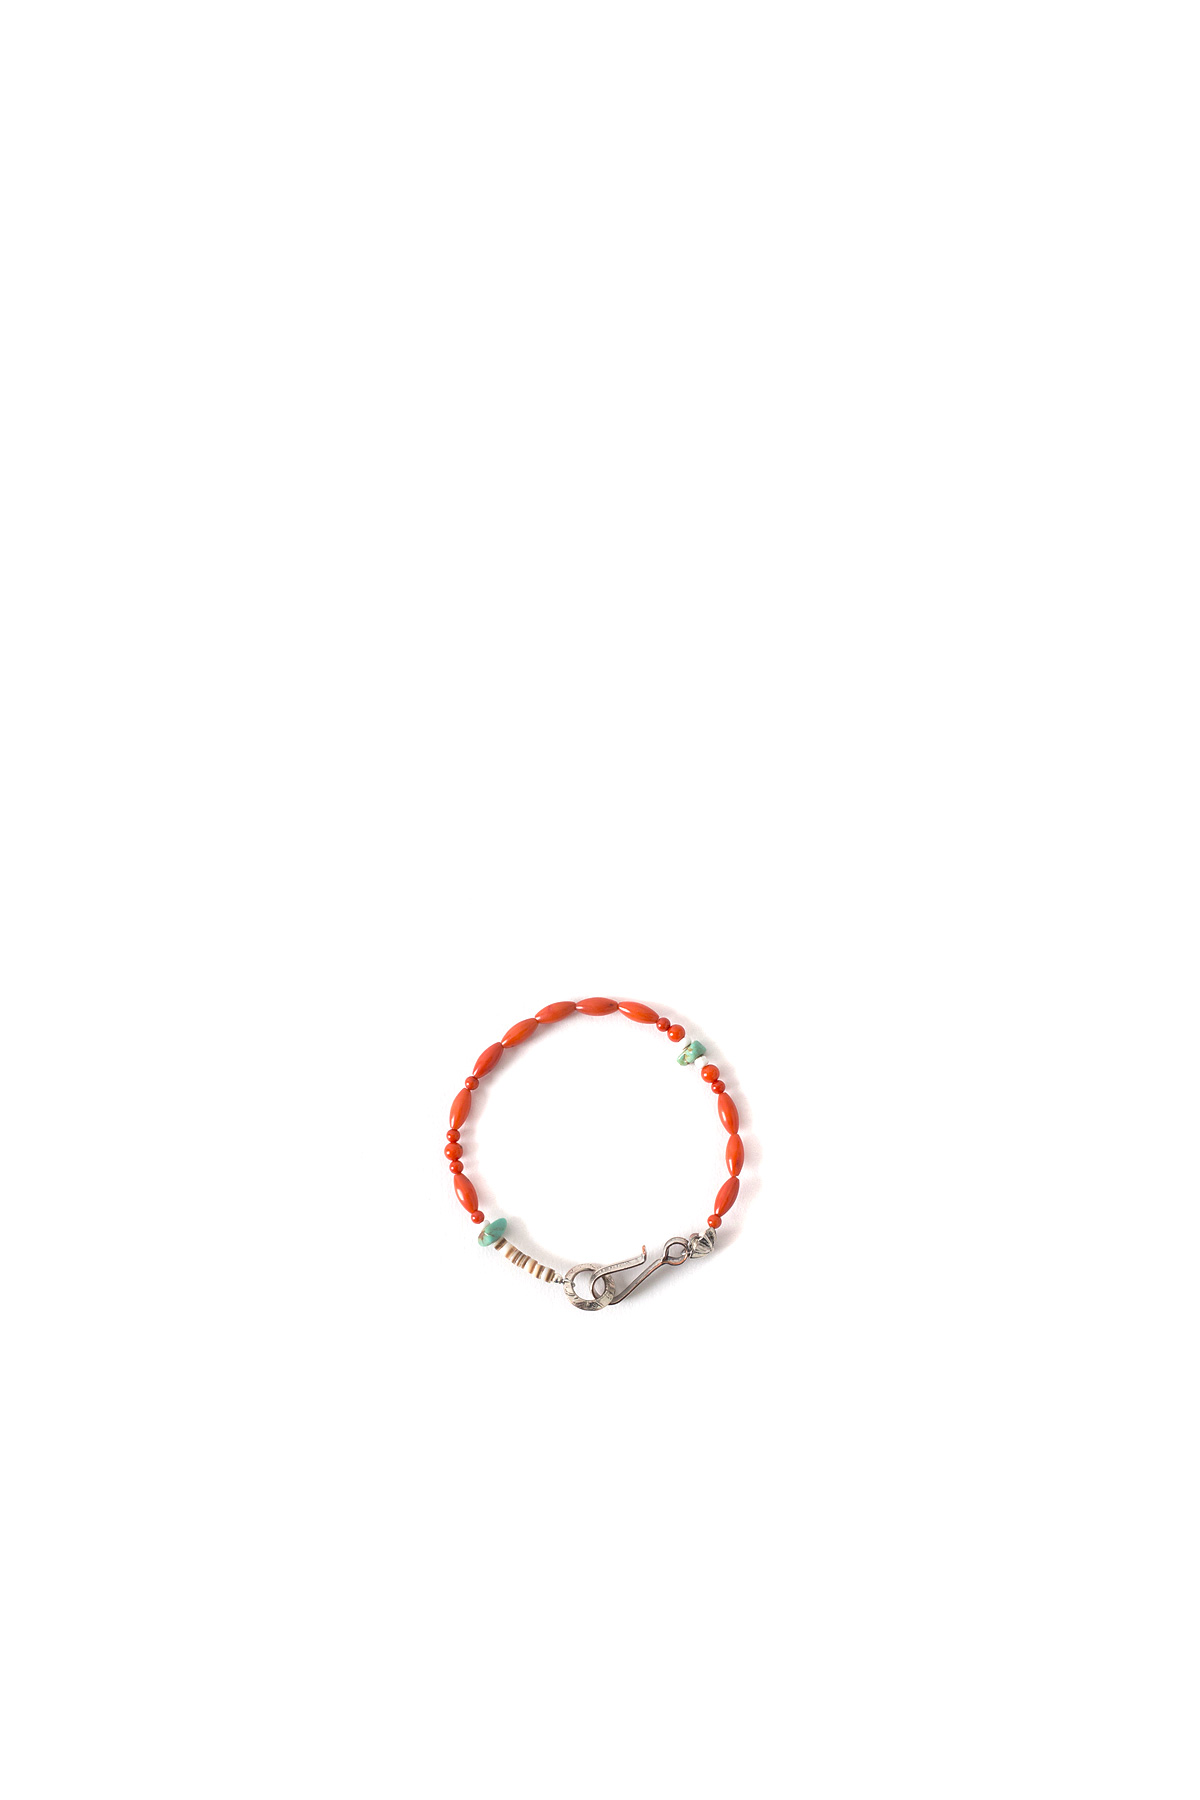 North Works : Nickel 10¢ Hook Coral Bracelet